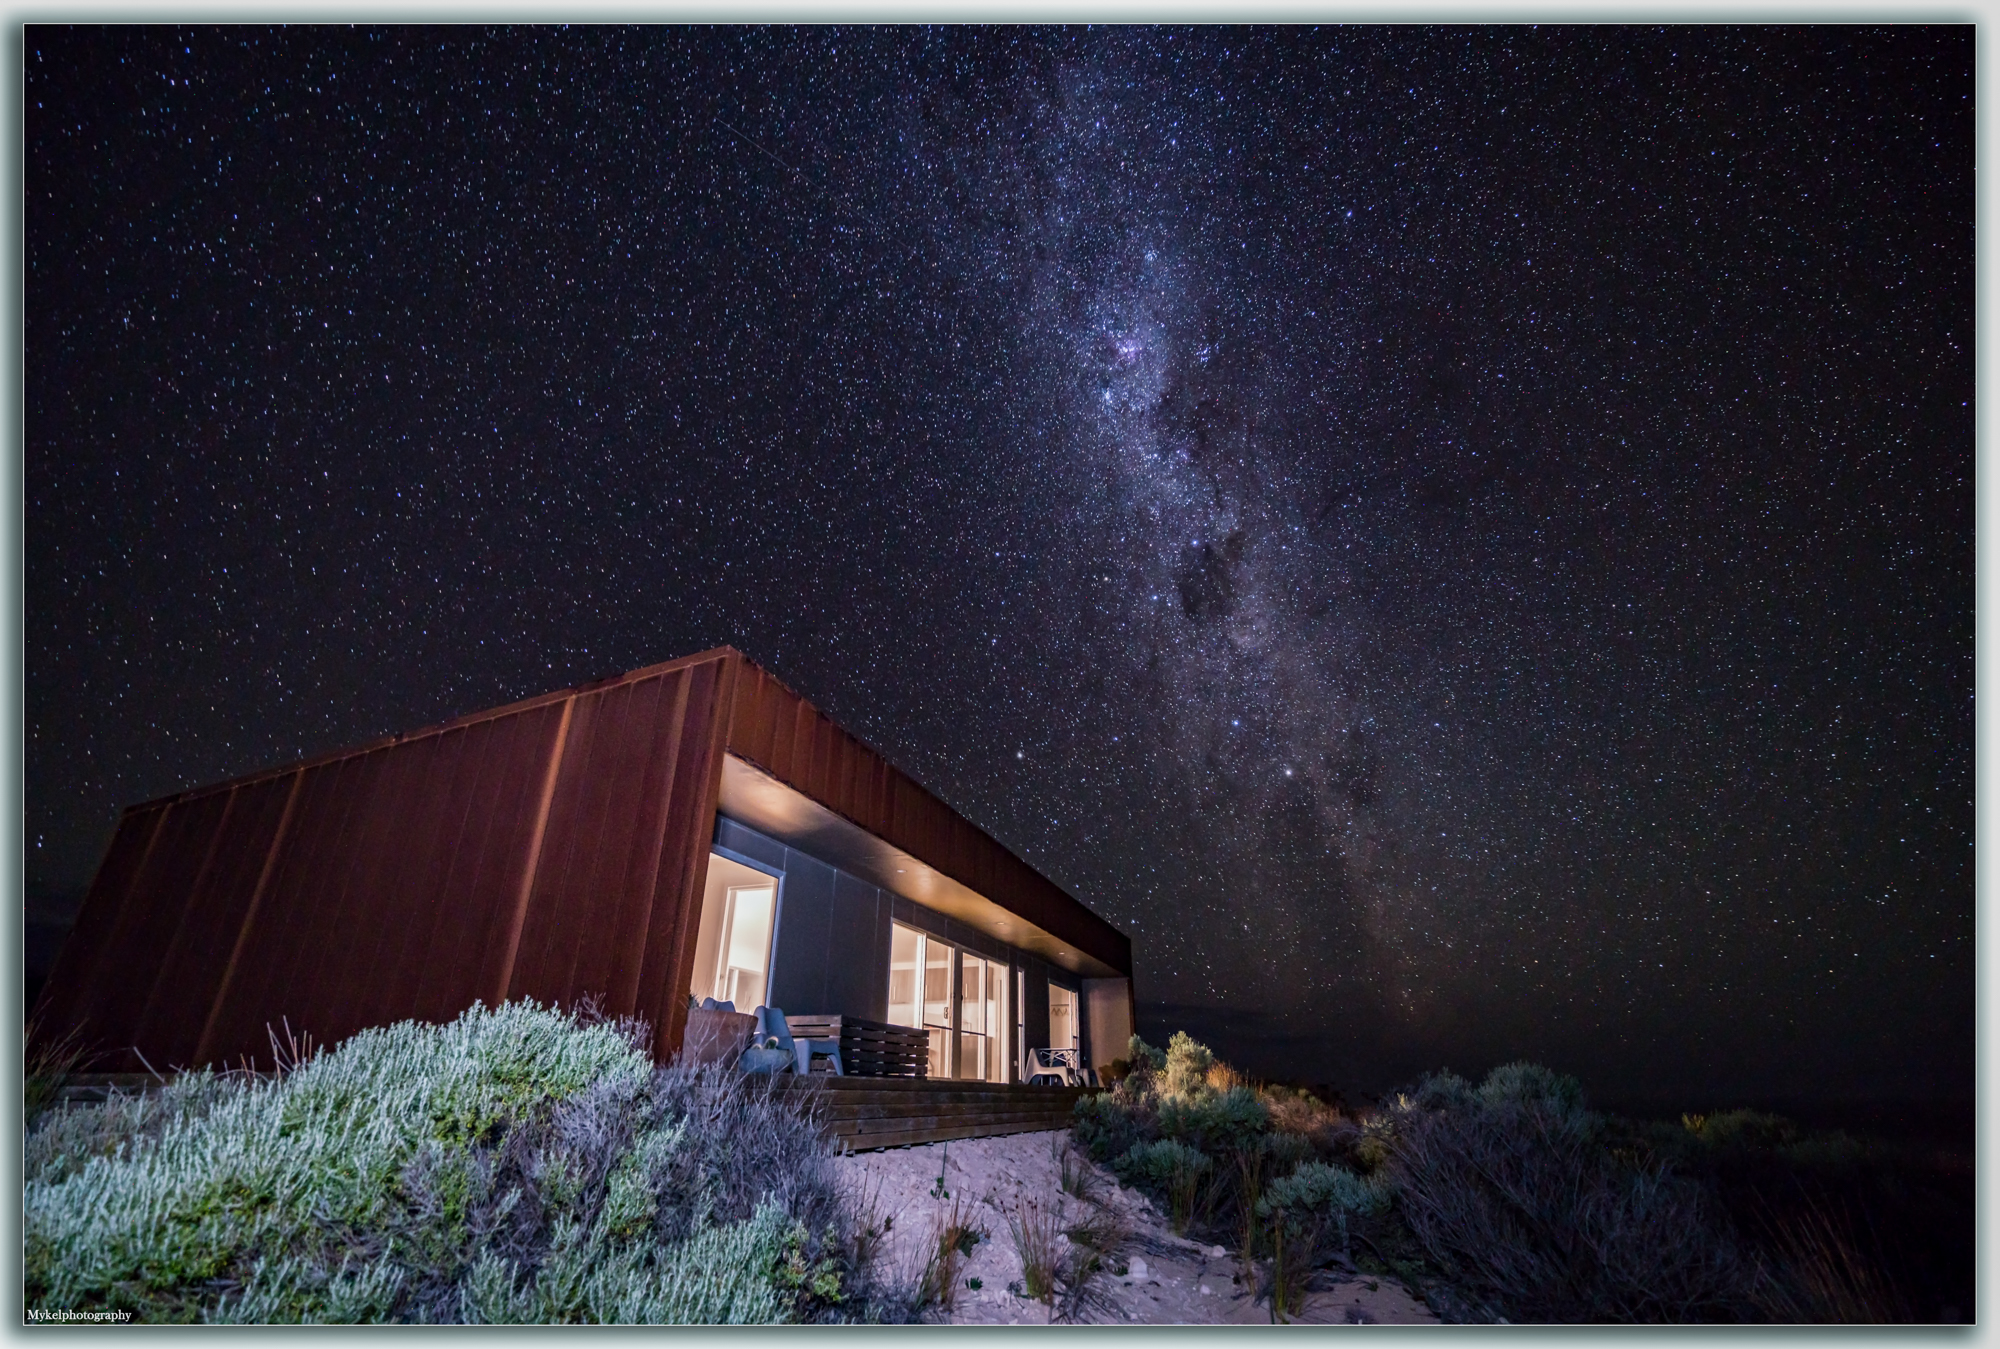 Camel Beach House under the stars, they feel so close you could just reach up and touch them